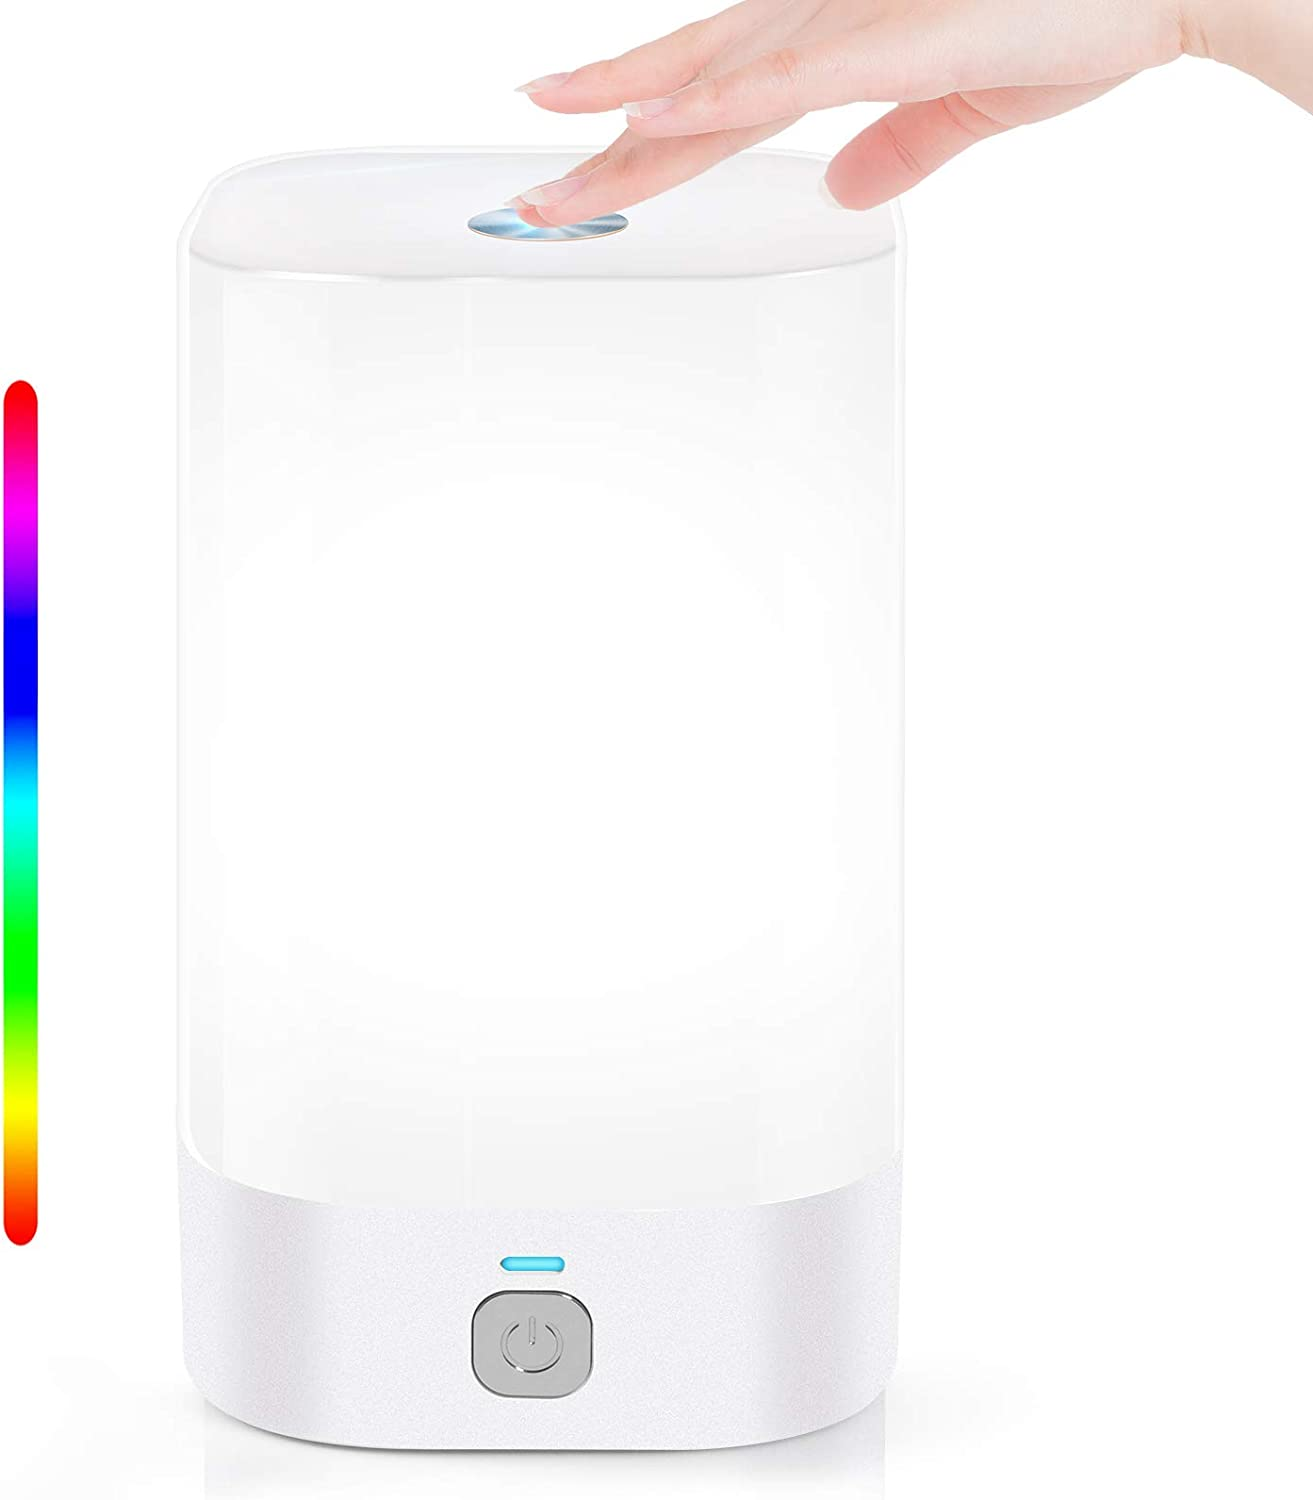 Smart Table Lamp, Cordless Rechargeable LED Bedside Touch Control Lamp with Color Changing RGB and Dimmable Warm White, Night Lights for Bedroom, Baby Kids Room, Living Room, Office, College Dorm